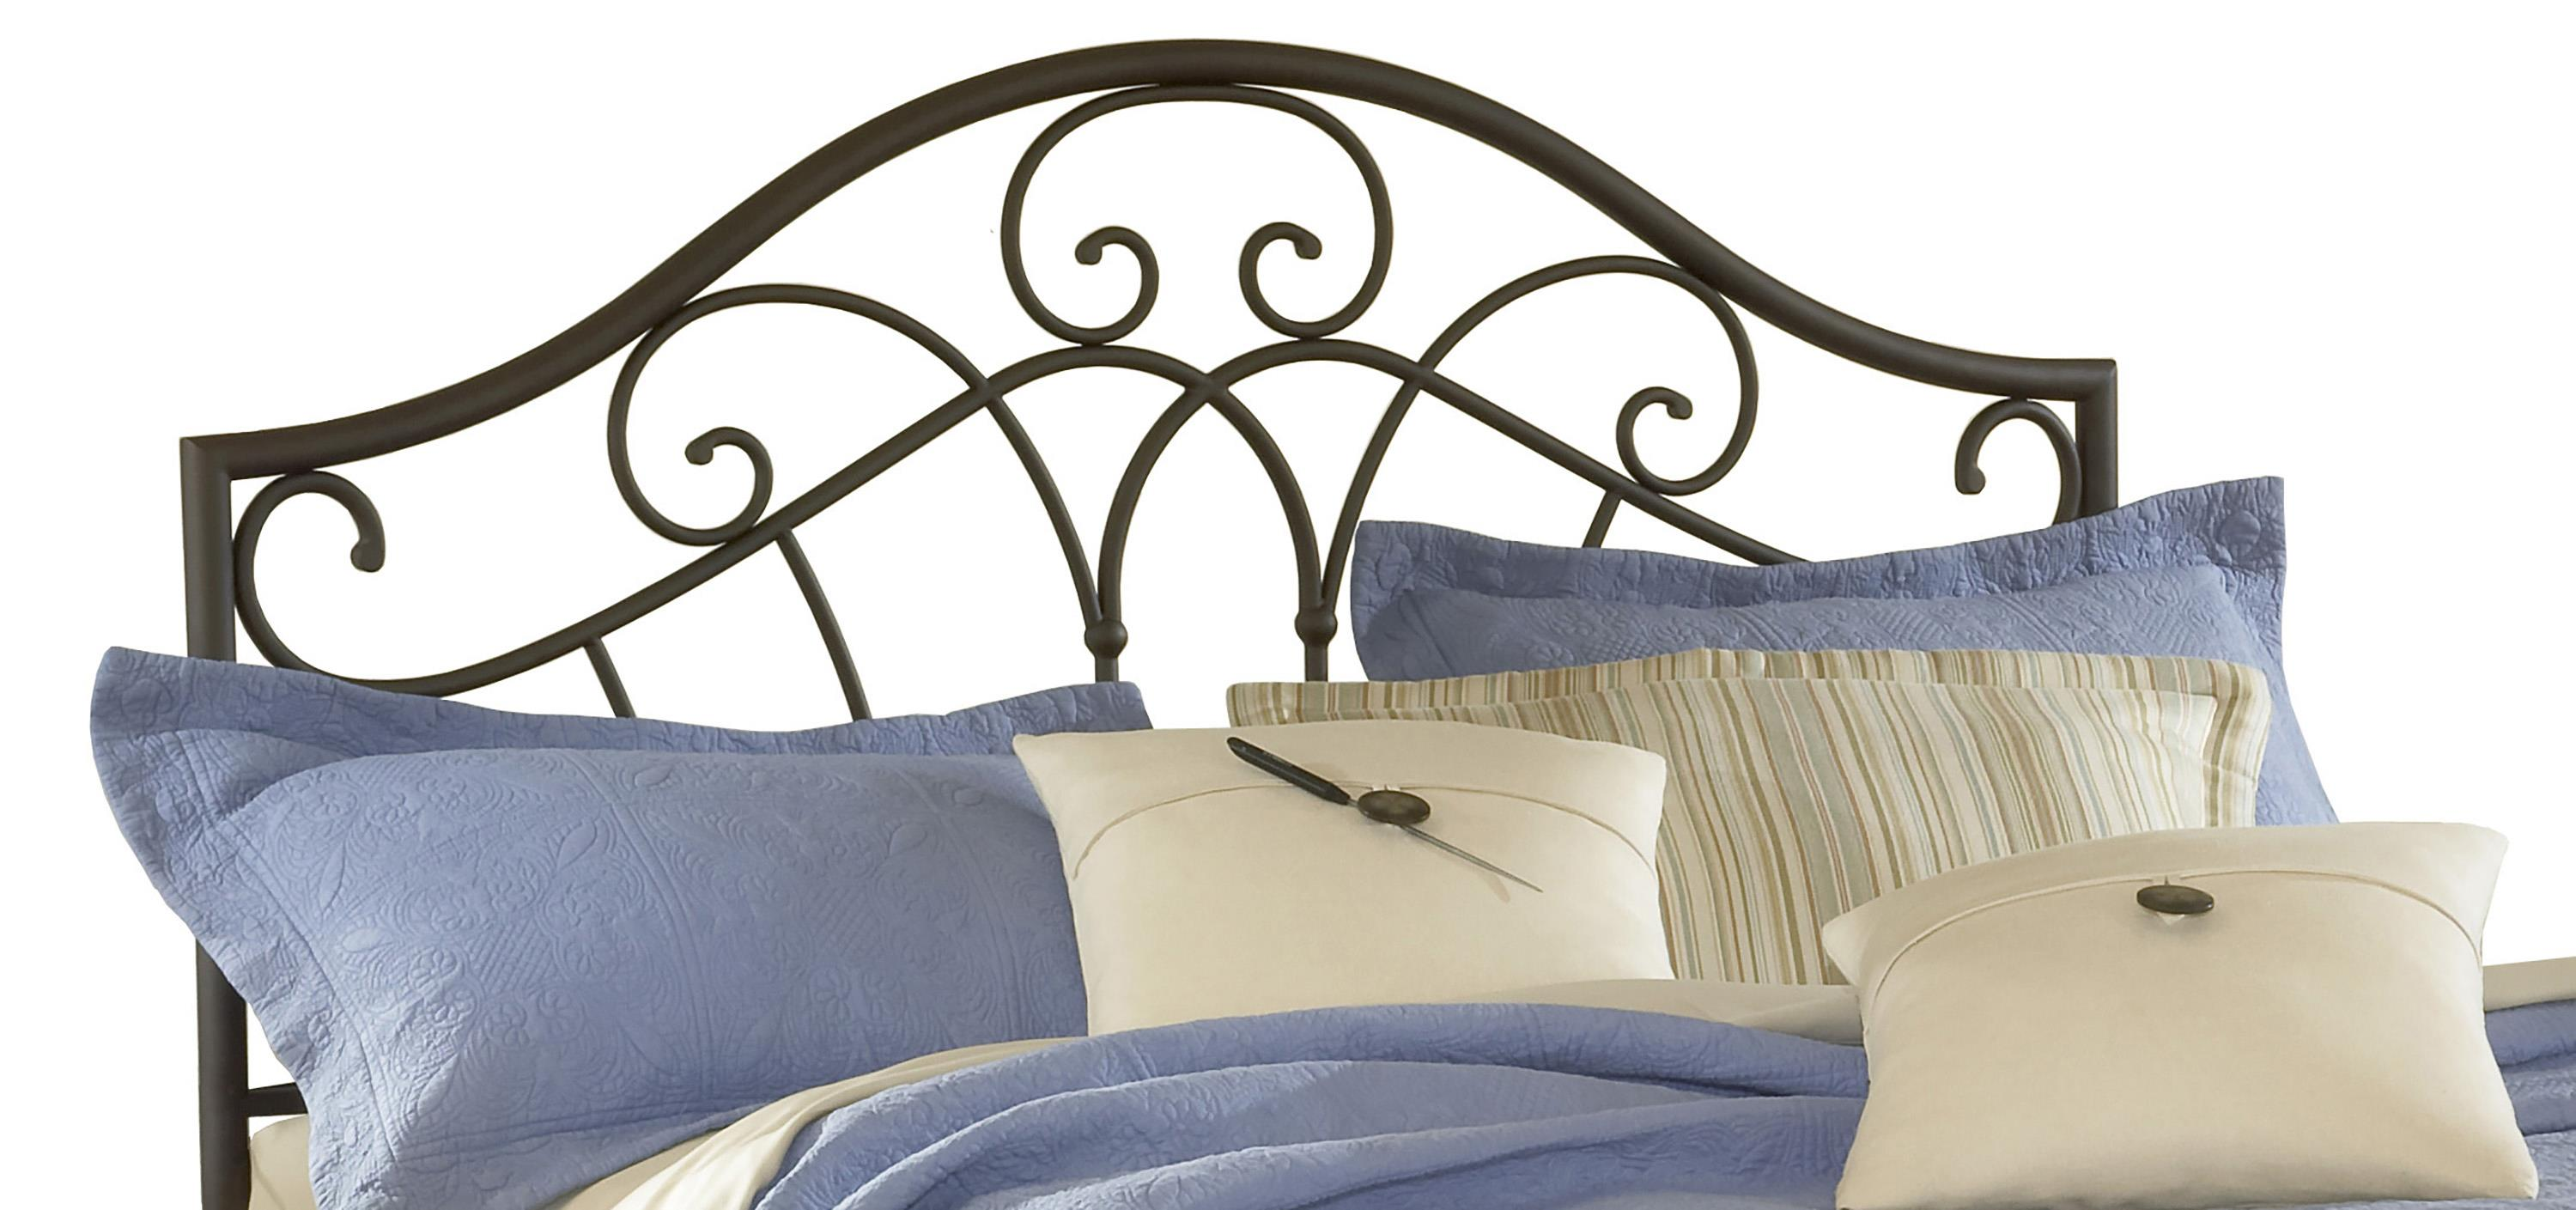 Hillsdale Metal Beds Josephine Full/ Queen Headboard with Rails - Item Number: 1544HFQR